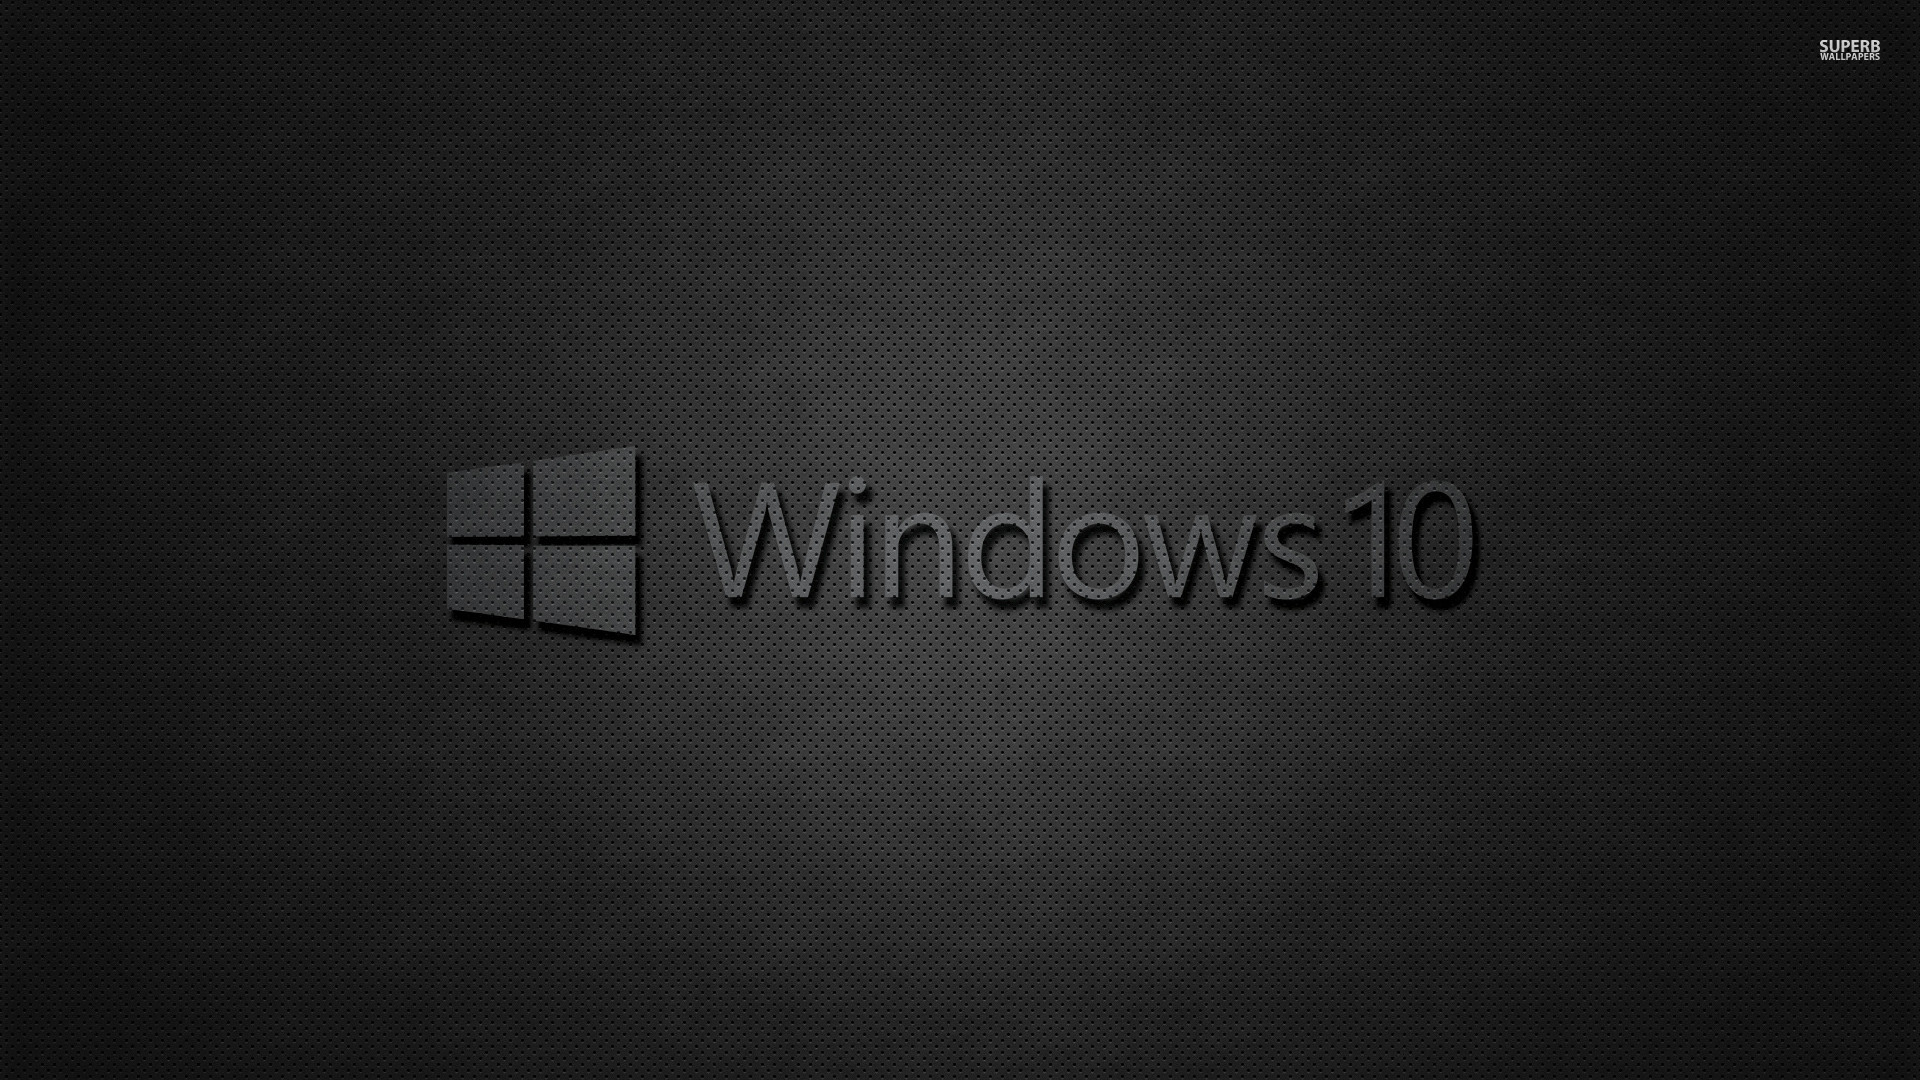 Tags black windows windows black windows seven seven date 10 10 07 - Dark Windows 10 Wallpapers Wallpapersafari